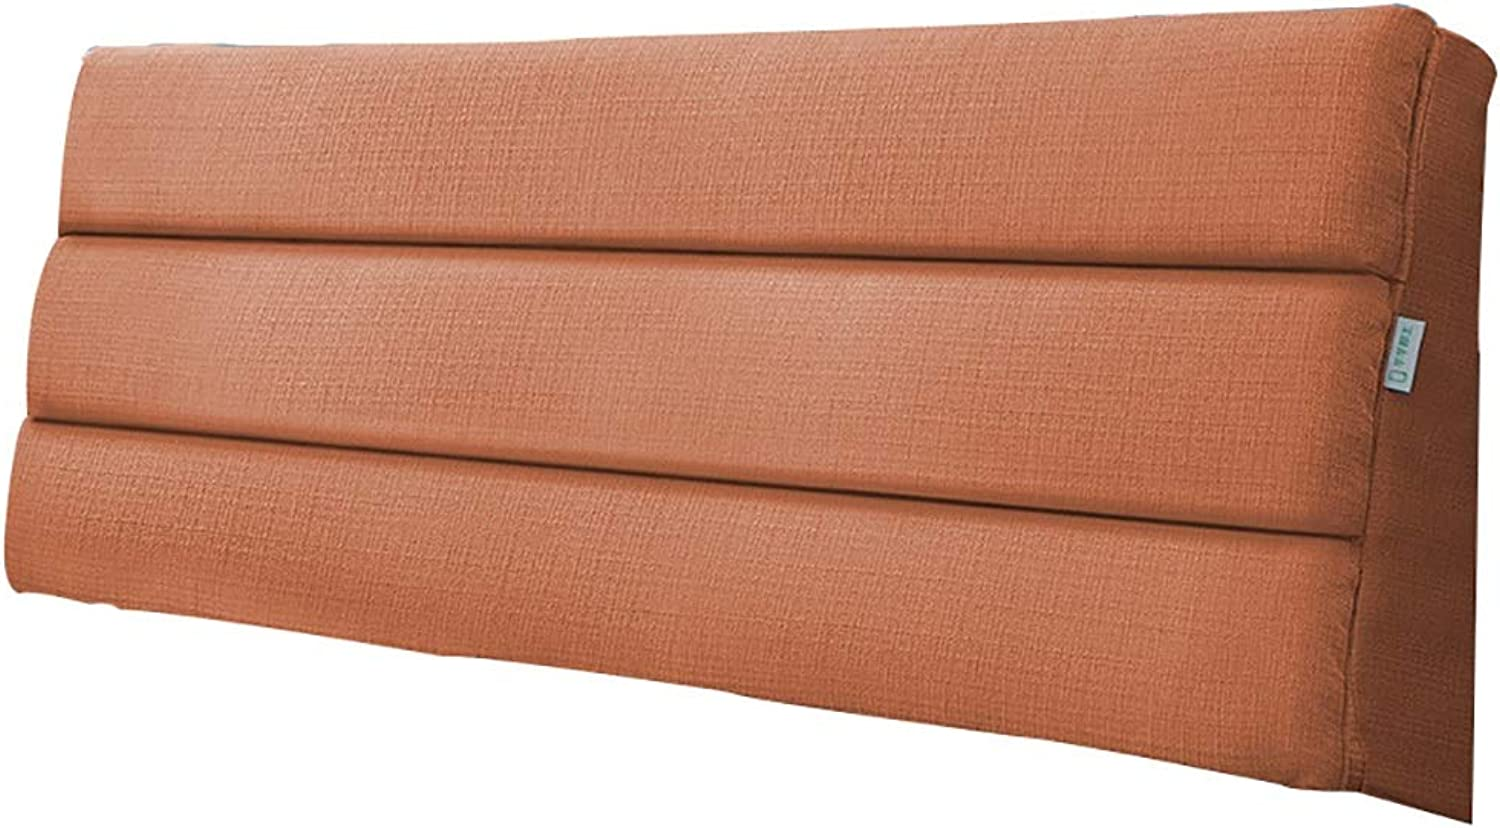 LXLIGHTS Headboard Bedside Cushion Triangle Backrest Waist Pad Bed Wedge Bay Window Sofa Pillow Washable, Simple Style (color   orange, Size   90  50  5cm)